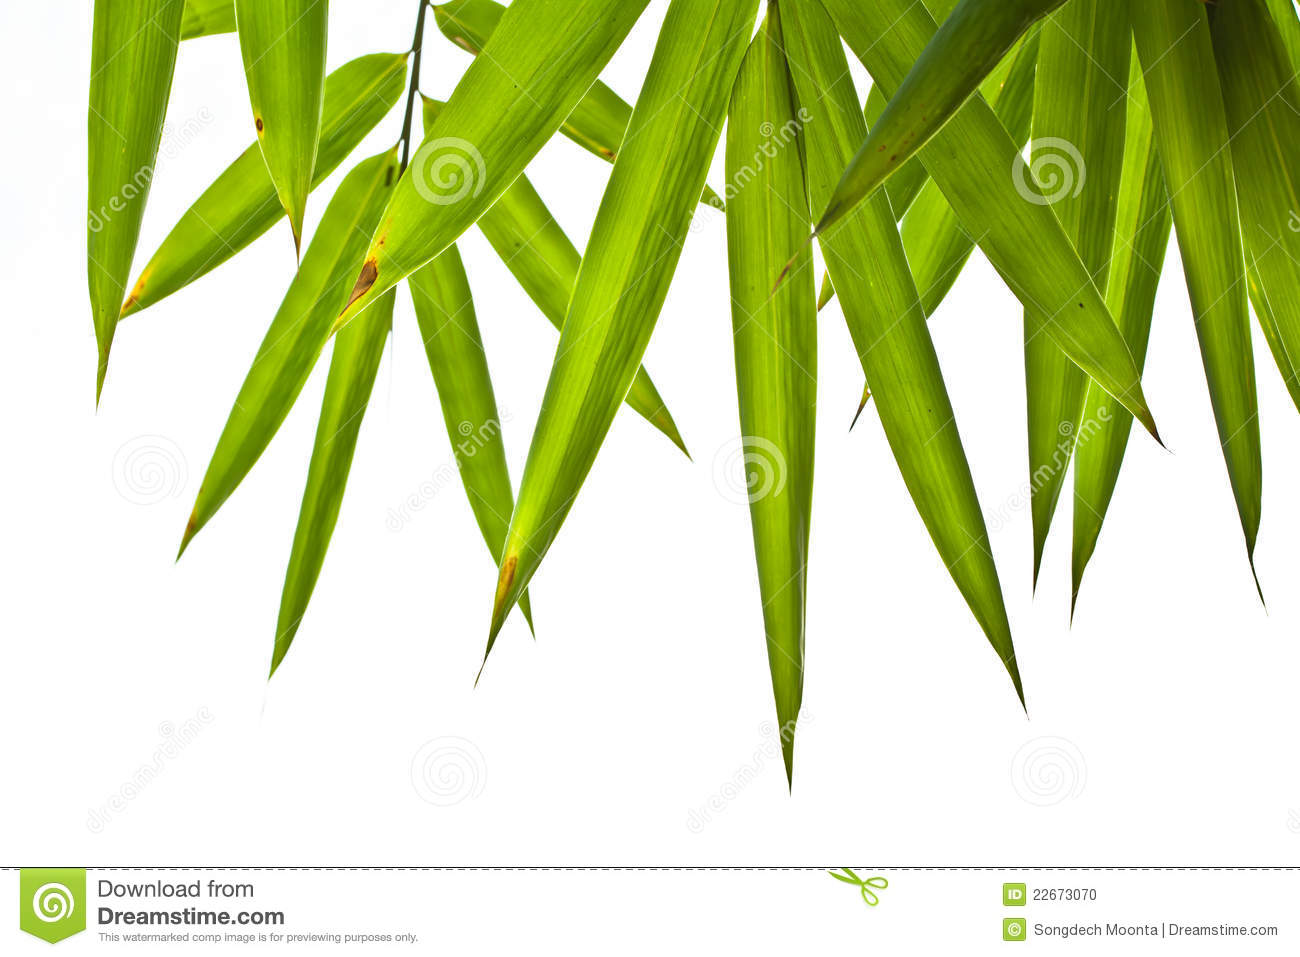 Bamboo Leaf Clipart Bamboo Leaves Isolated On